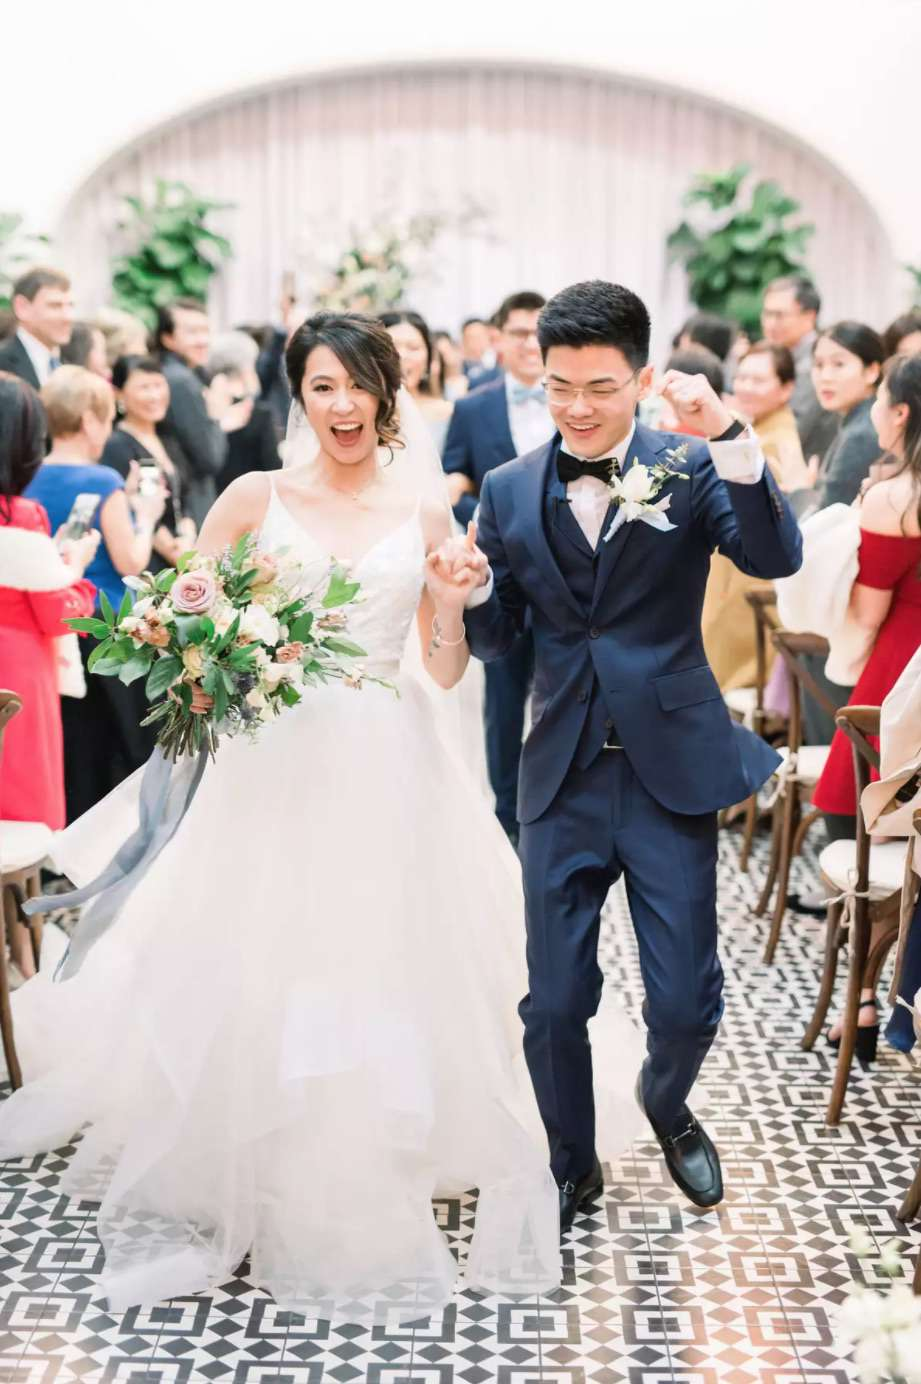 Newlyweds victorious recessional